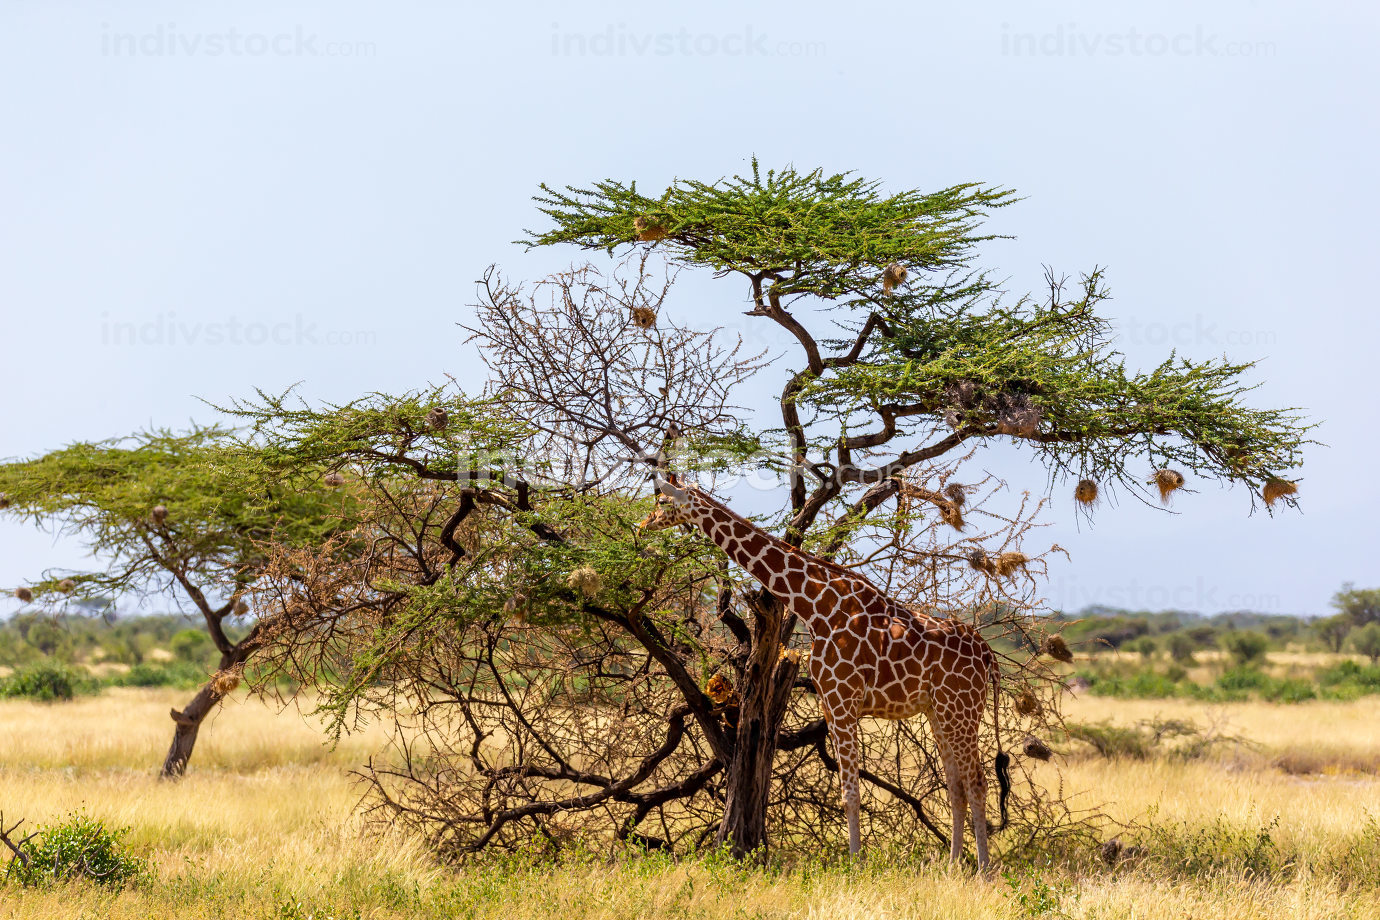 The Somalia giraffes eat the leaves of acacia trees